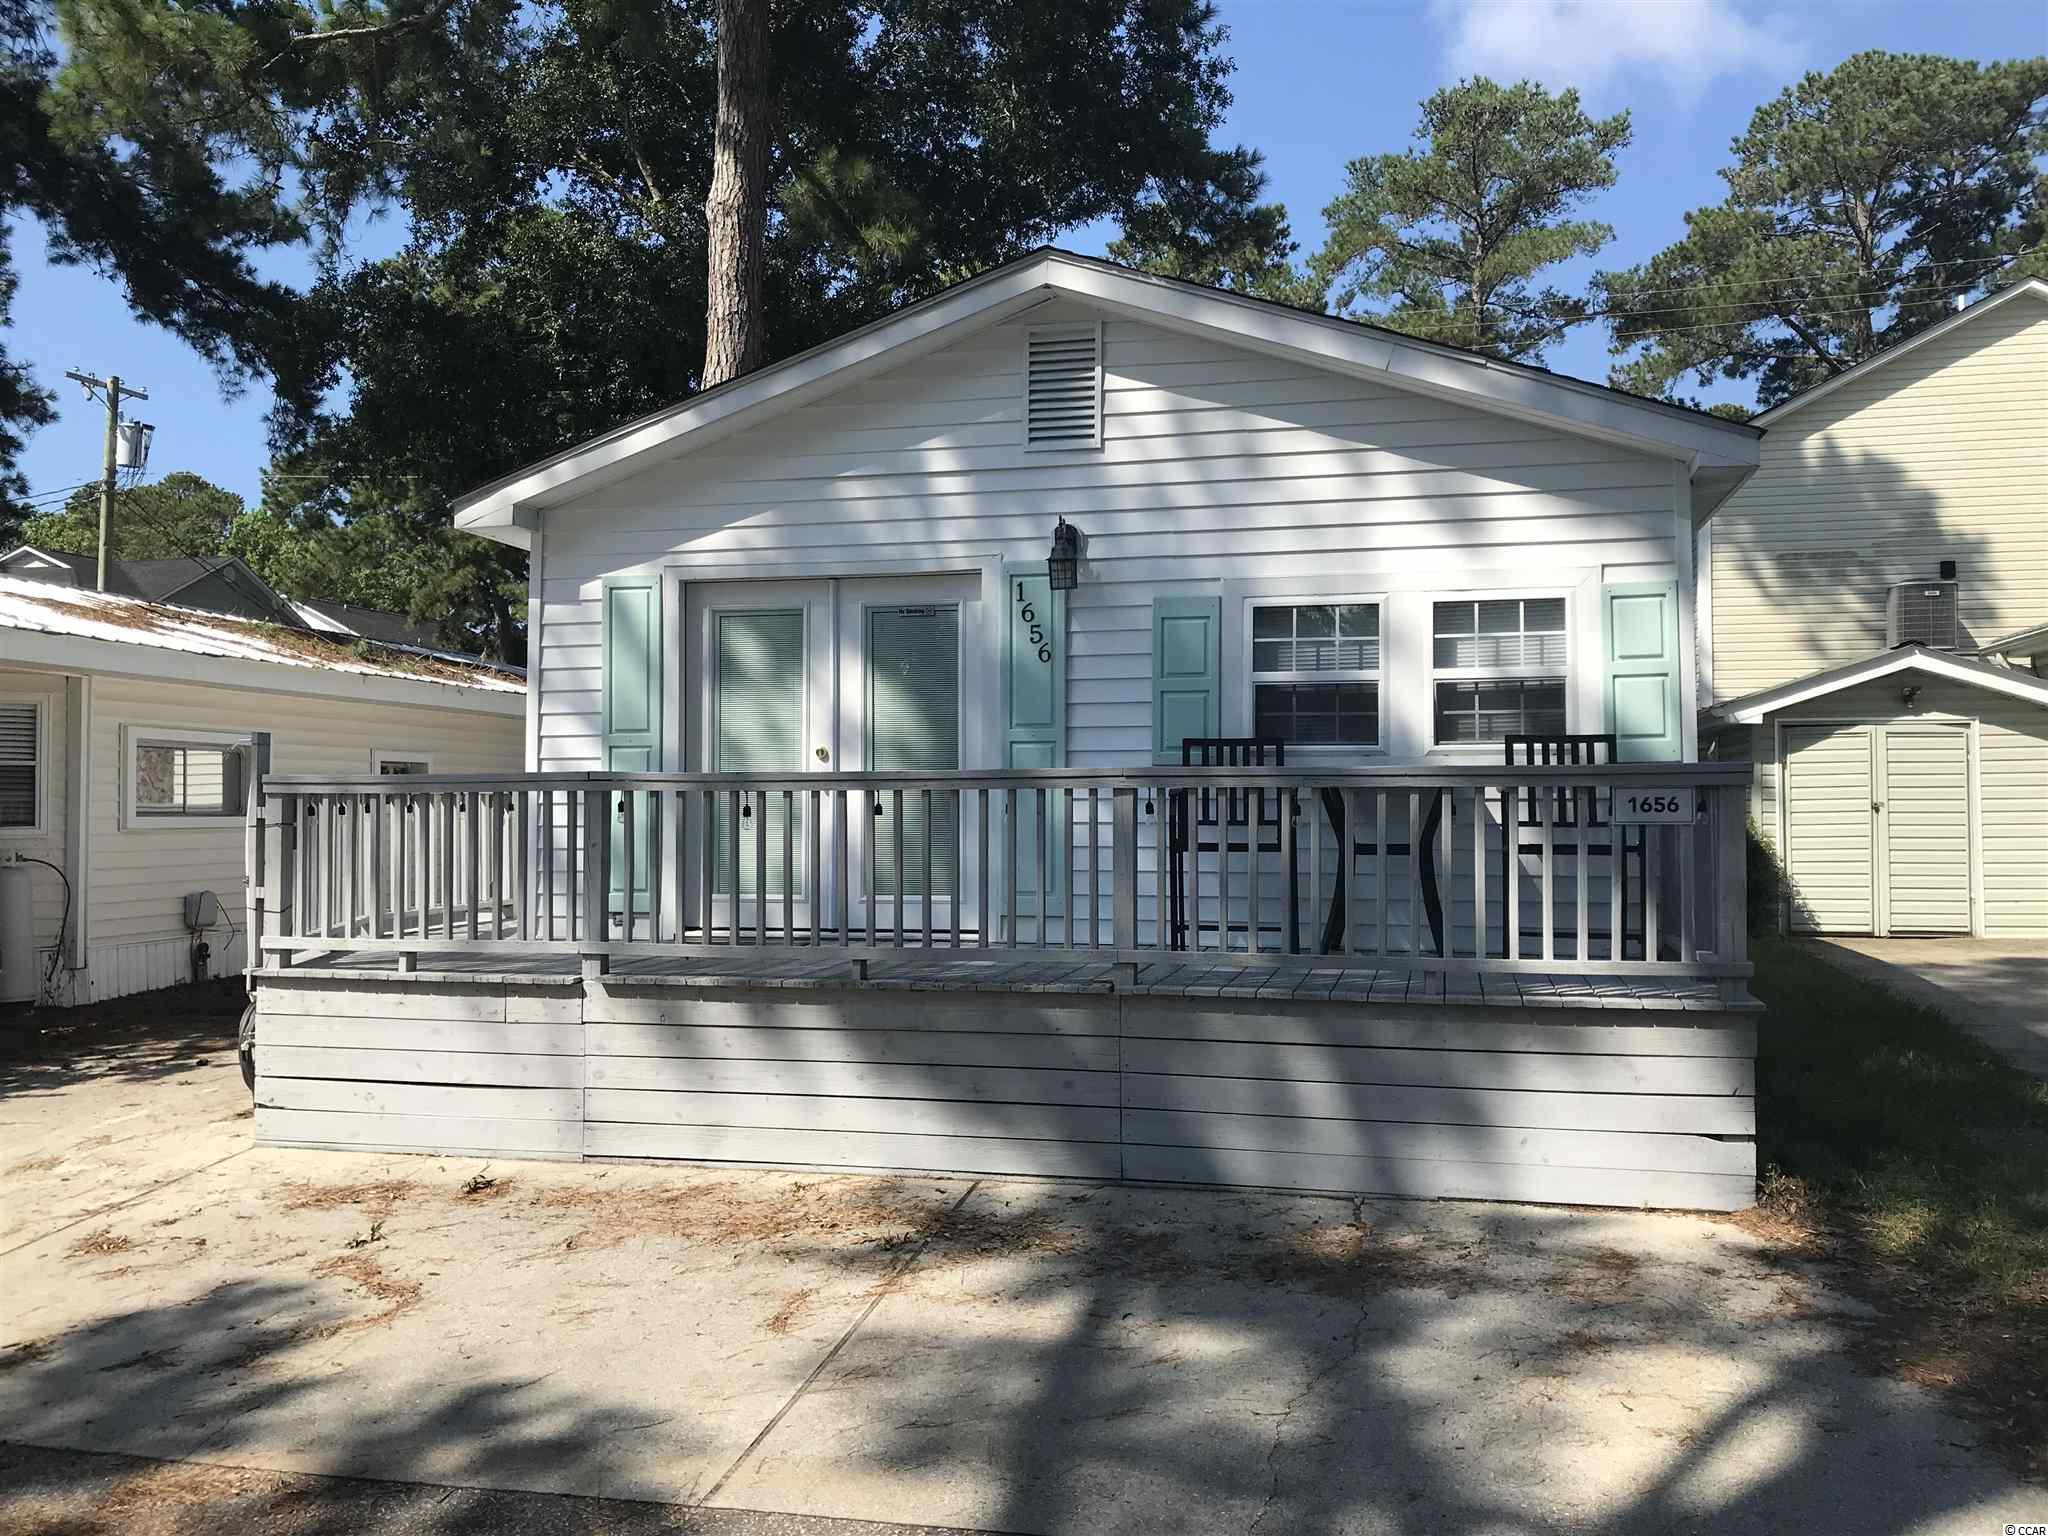 New tile shower, New water heater, New front storm door with built in blinds, New washer & dryer, remodeled bathroom in master. Golf cart conveys with sale